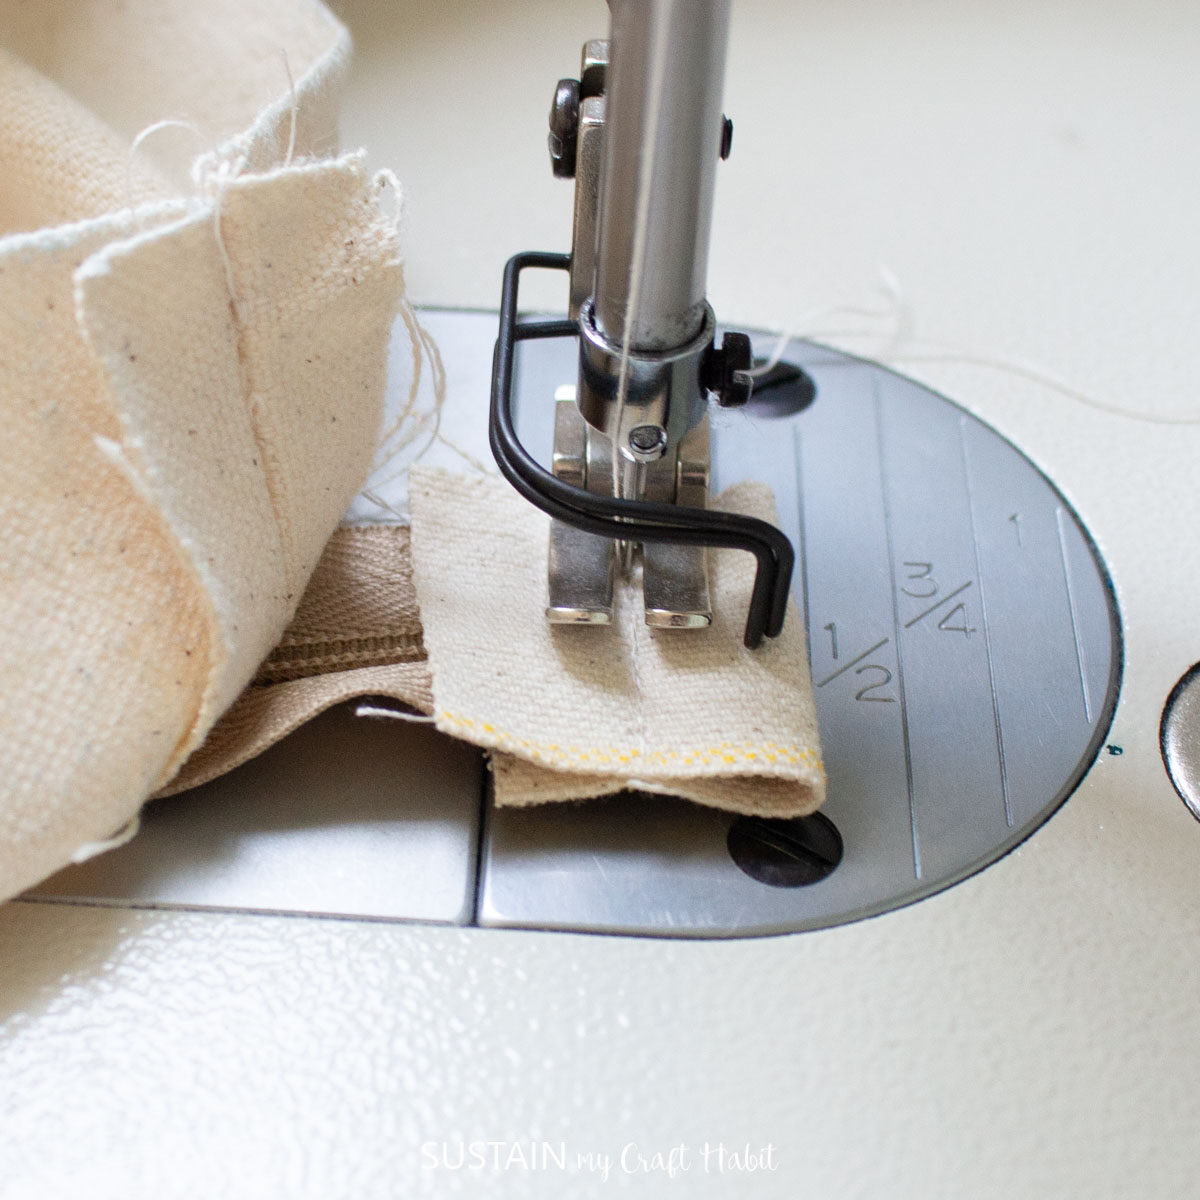 Folding and sewing the cut zipper.